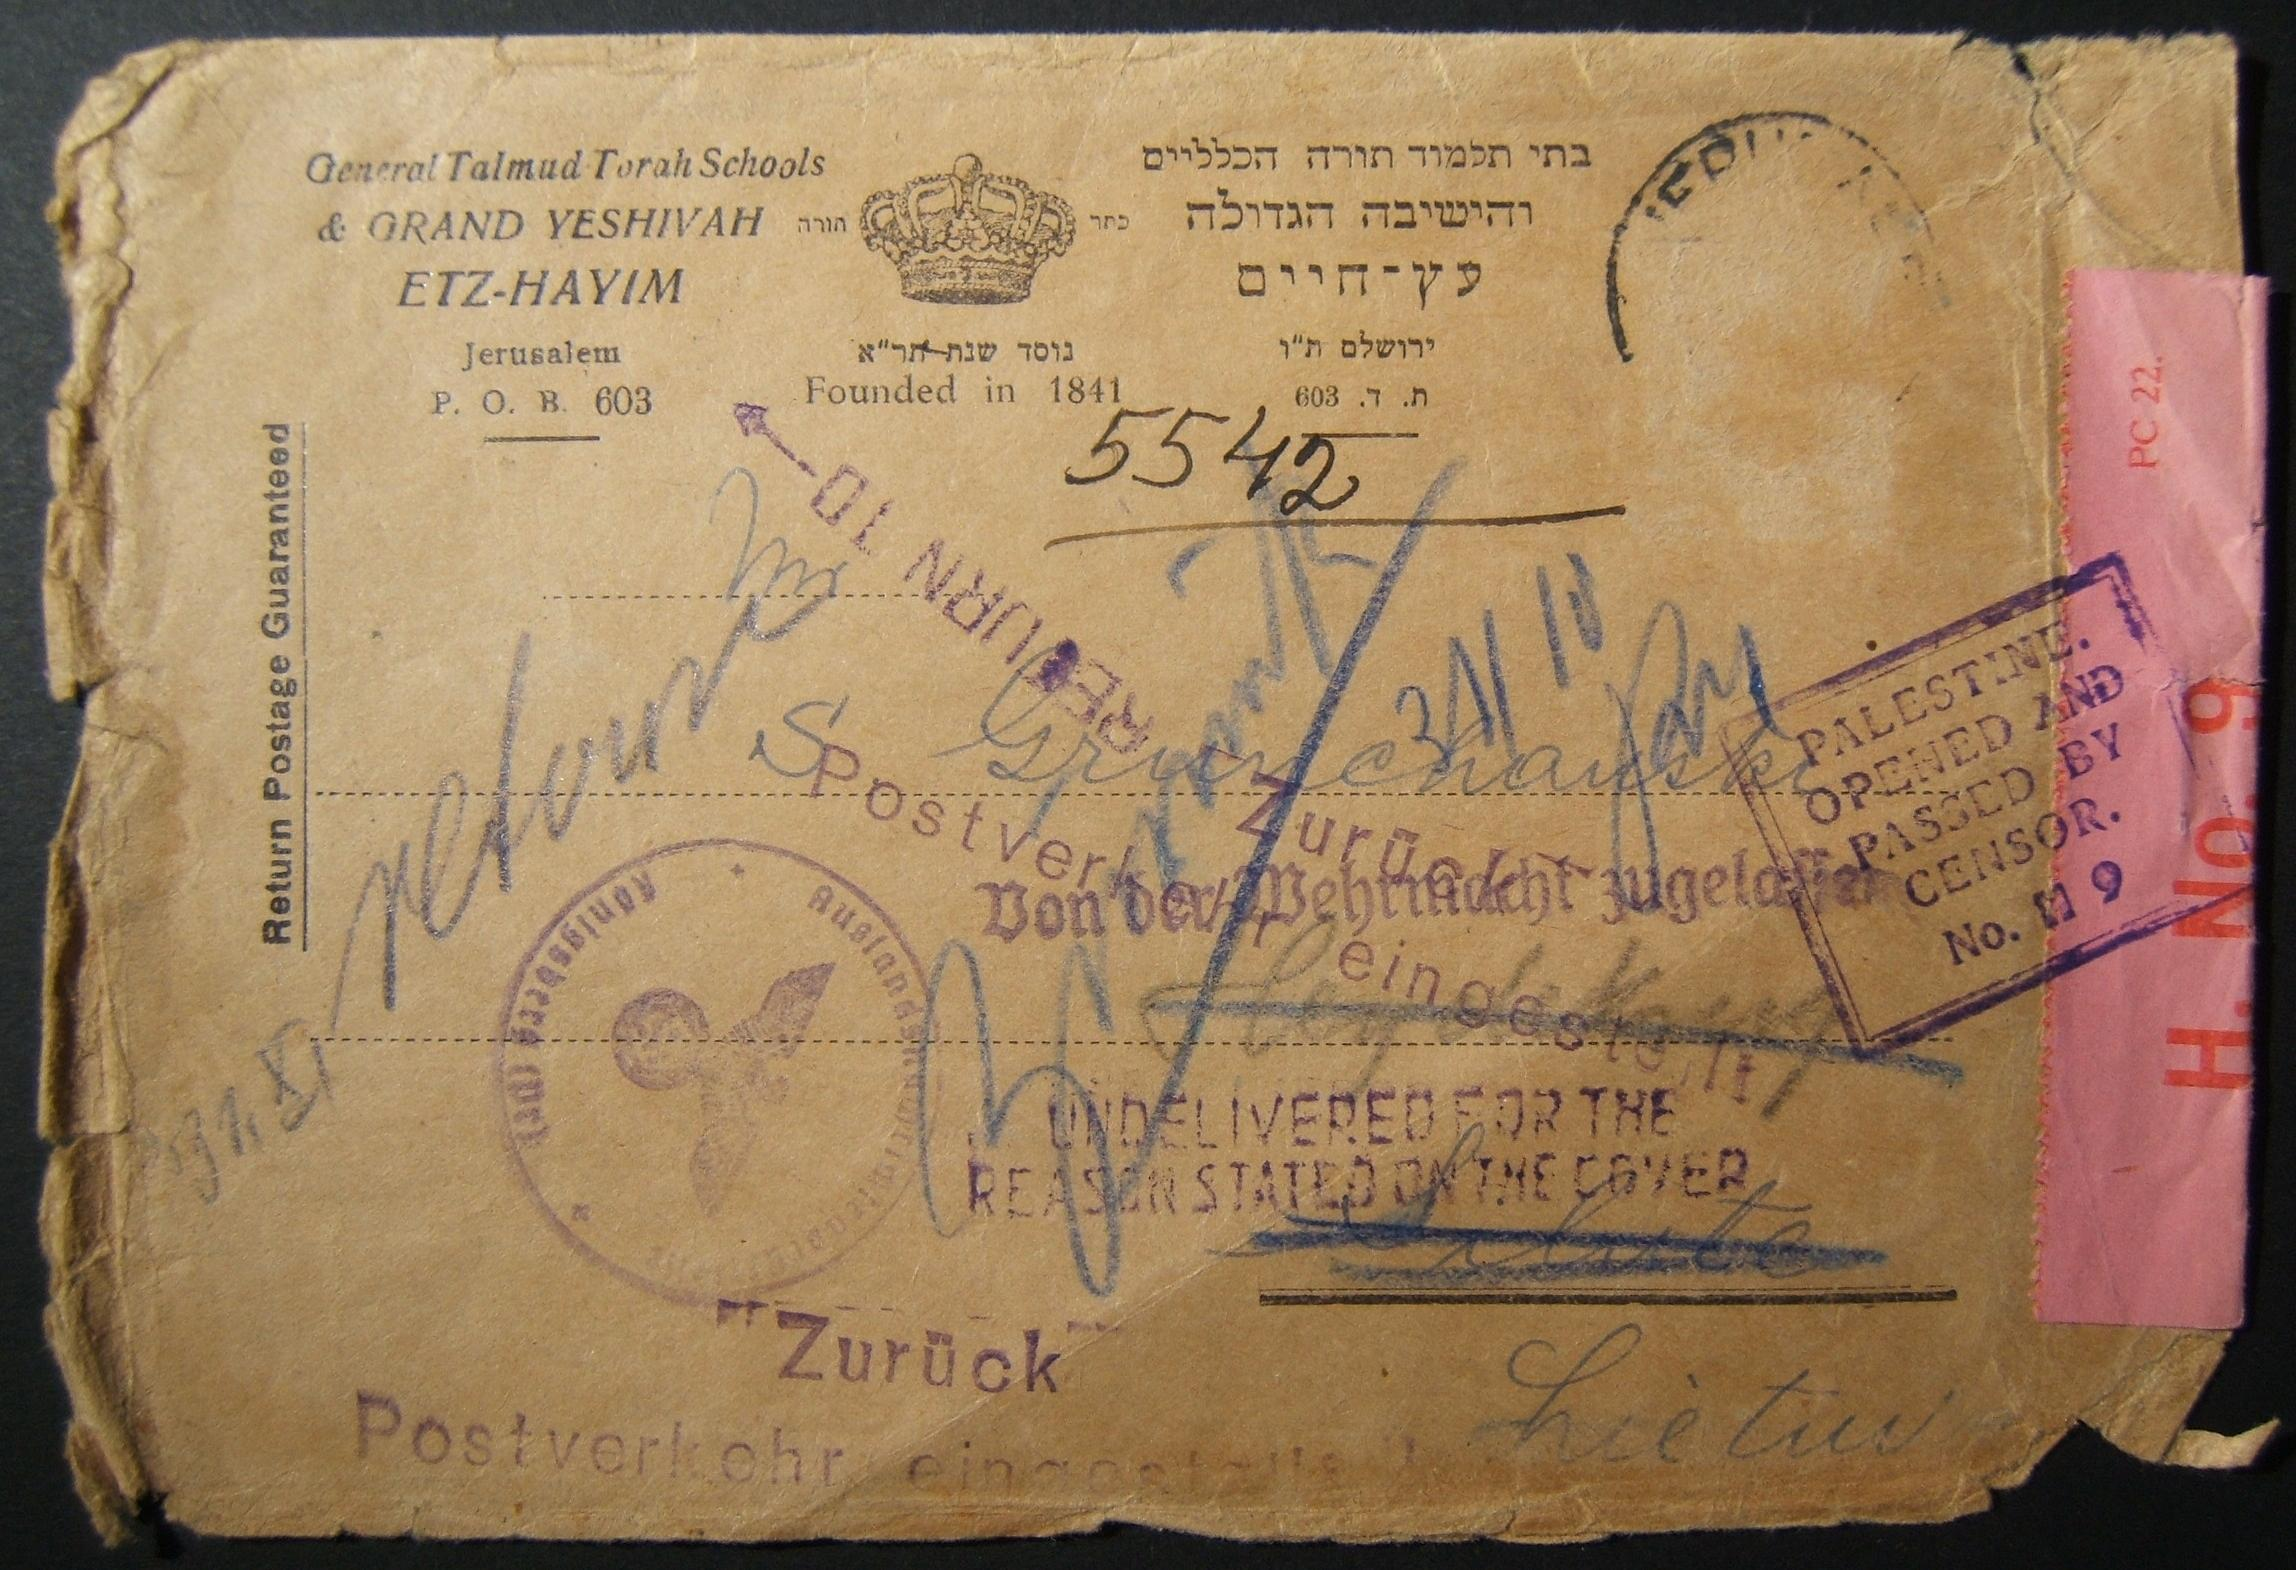 UNIQUE WWII 10/1939 Jewish mail from Palestine to Nazi Germany received, processed & returned